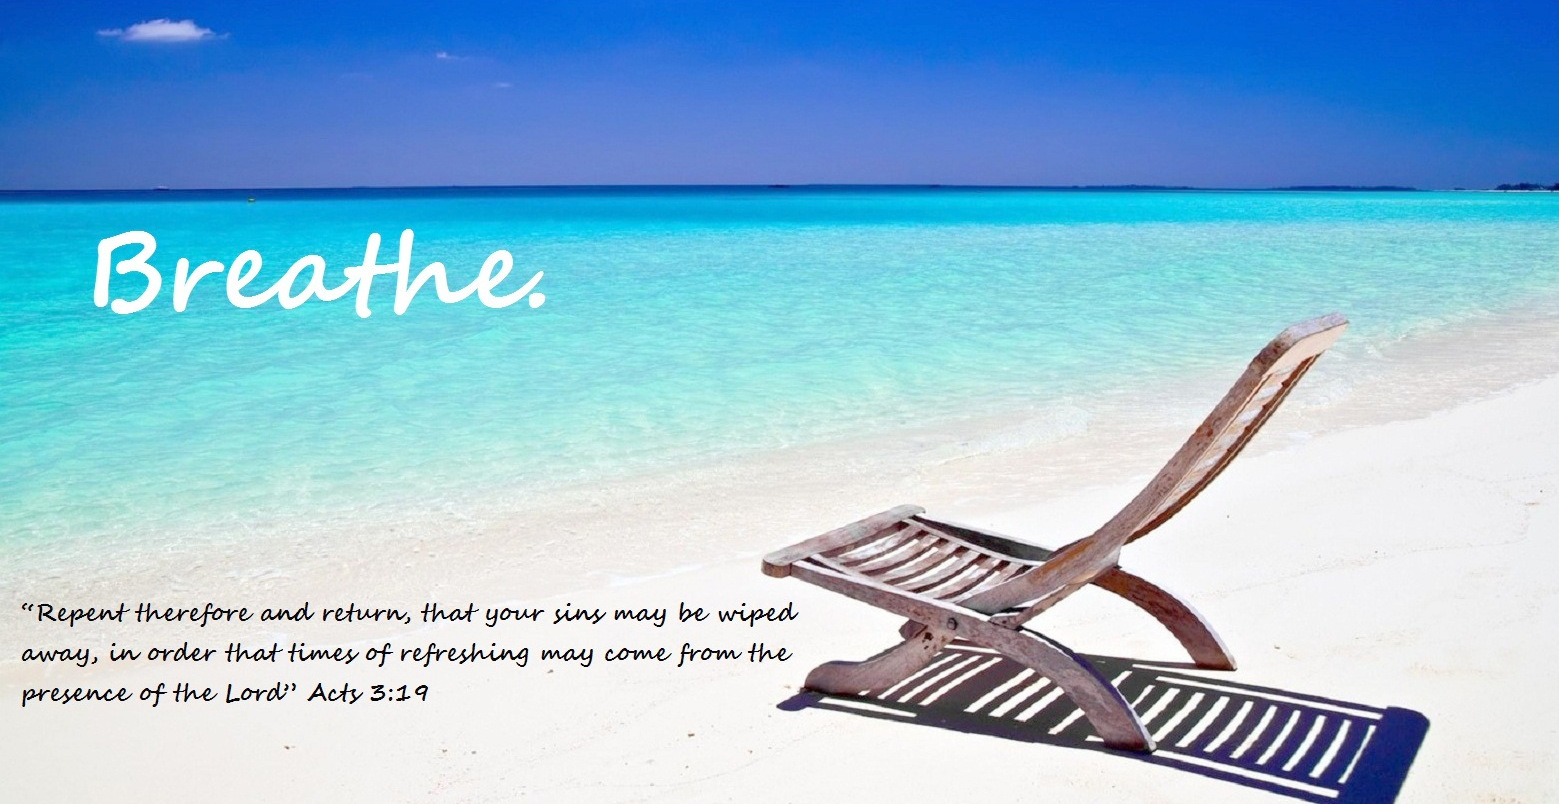 Breathe Beach Chair Acts319 Scripture 3 Rivertown Church